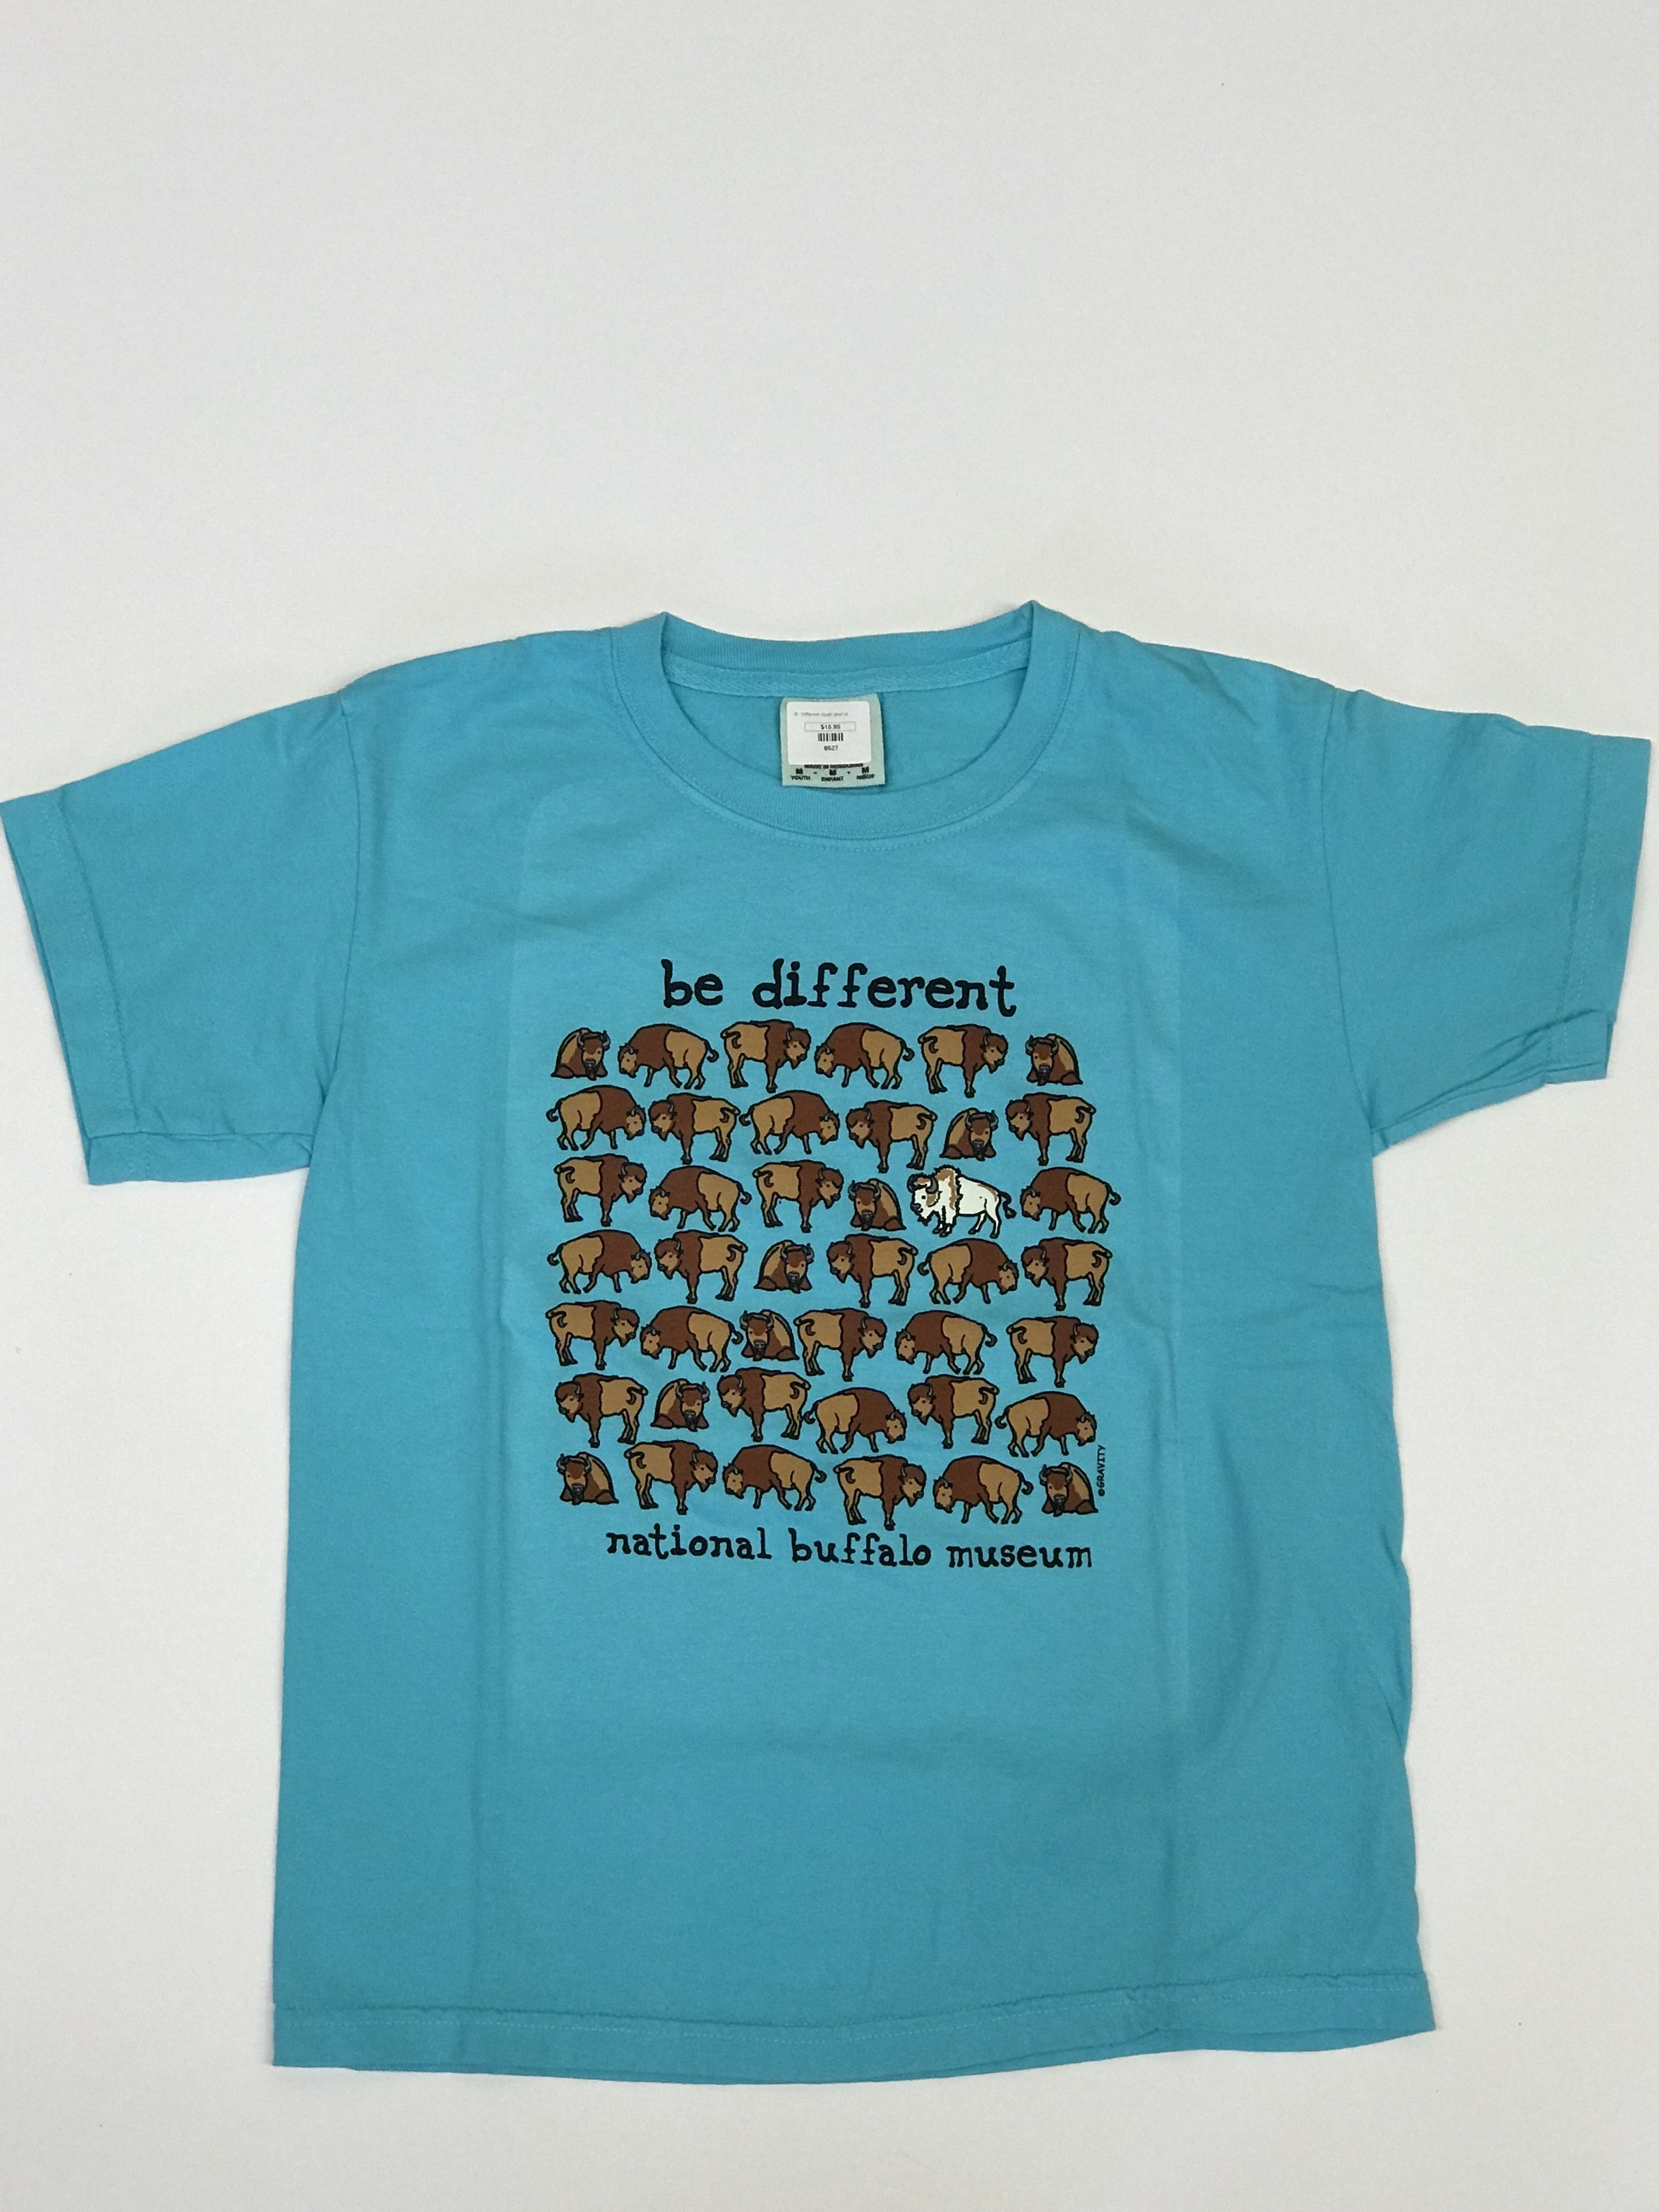 Be Different T-Shirt 8524-8525-8526-8527-8528